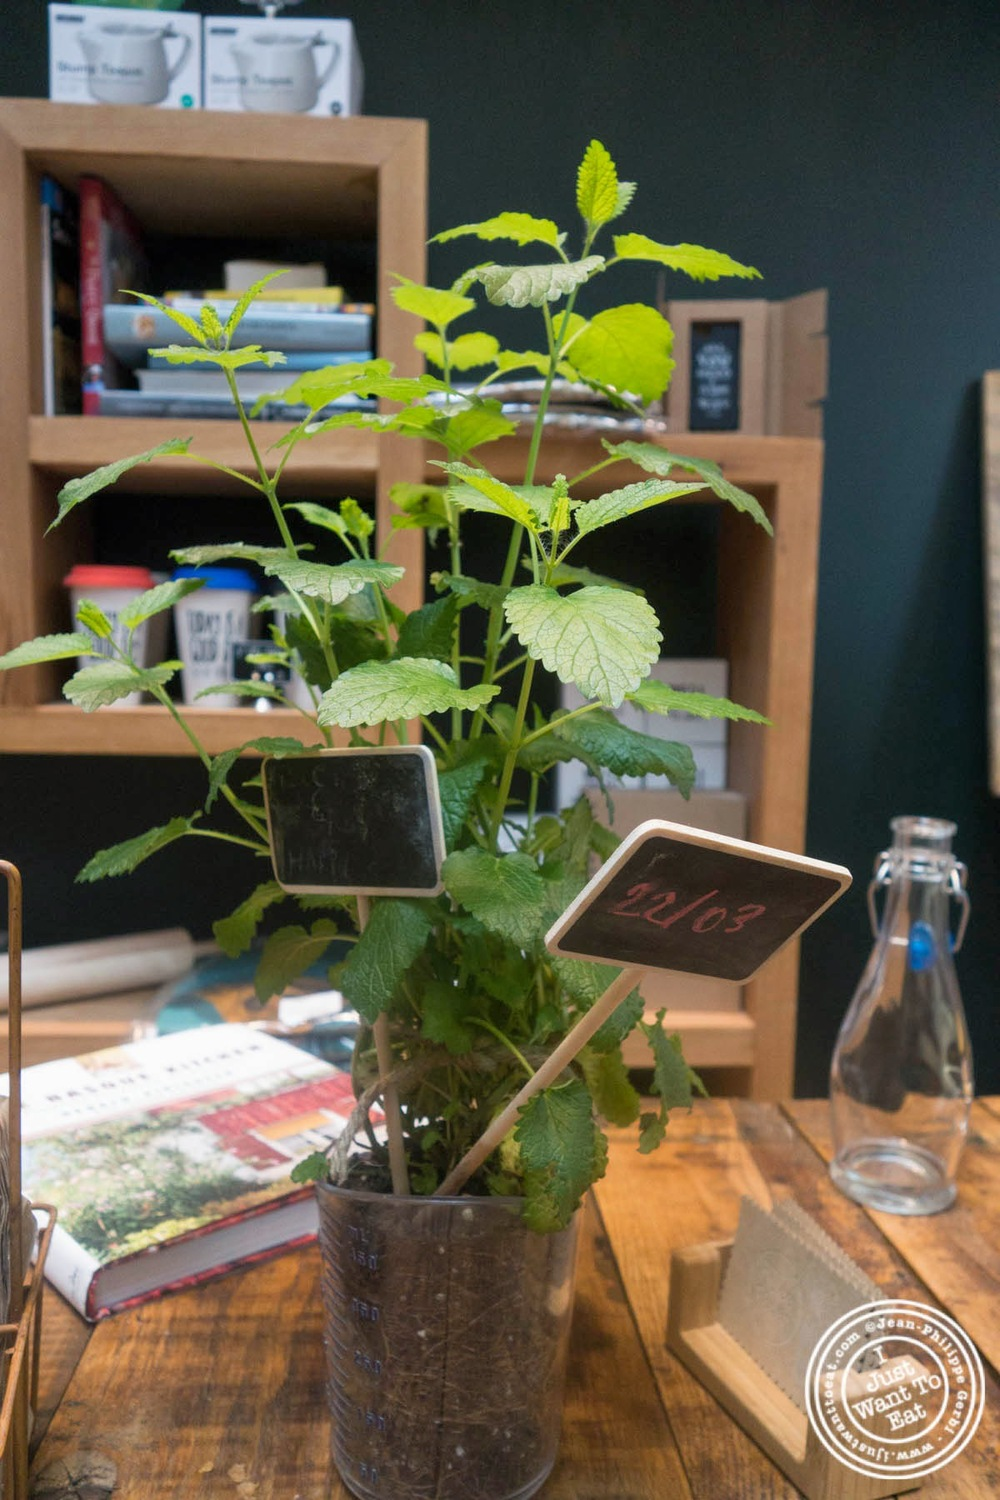 image of mint plant at Hogar Dulce Hogar, a Basque Bakery in Soho